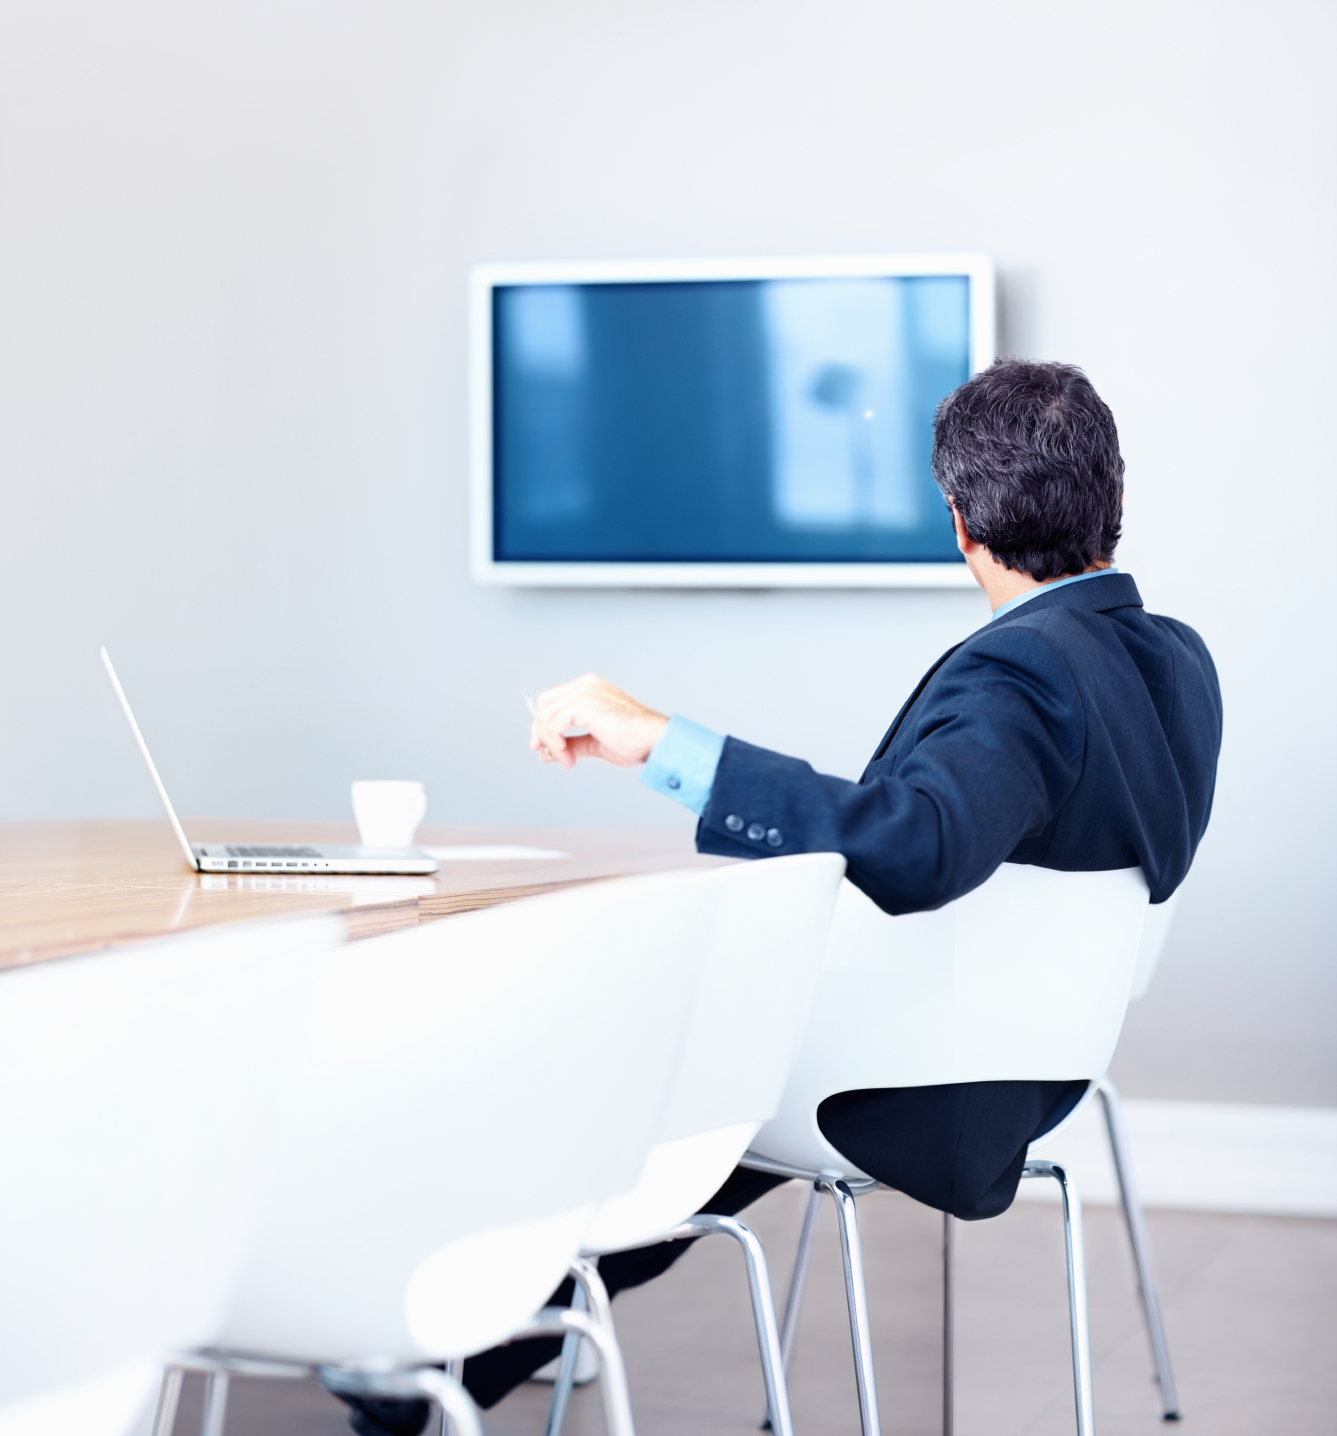 What Is The Right Size TV For A Home Office?